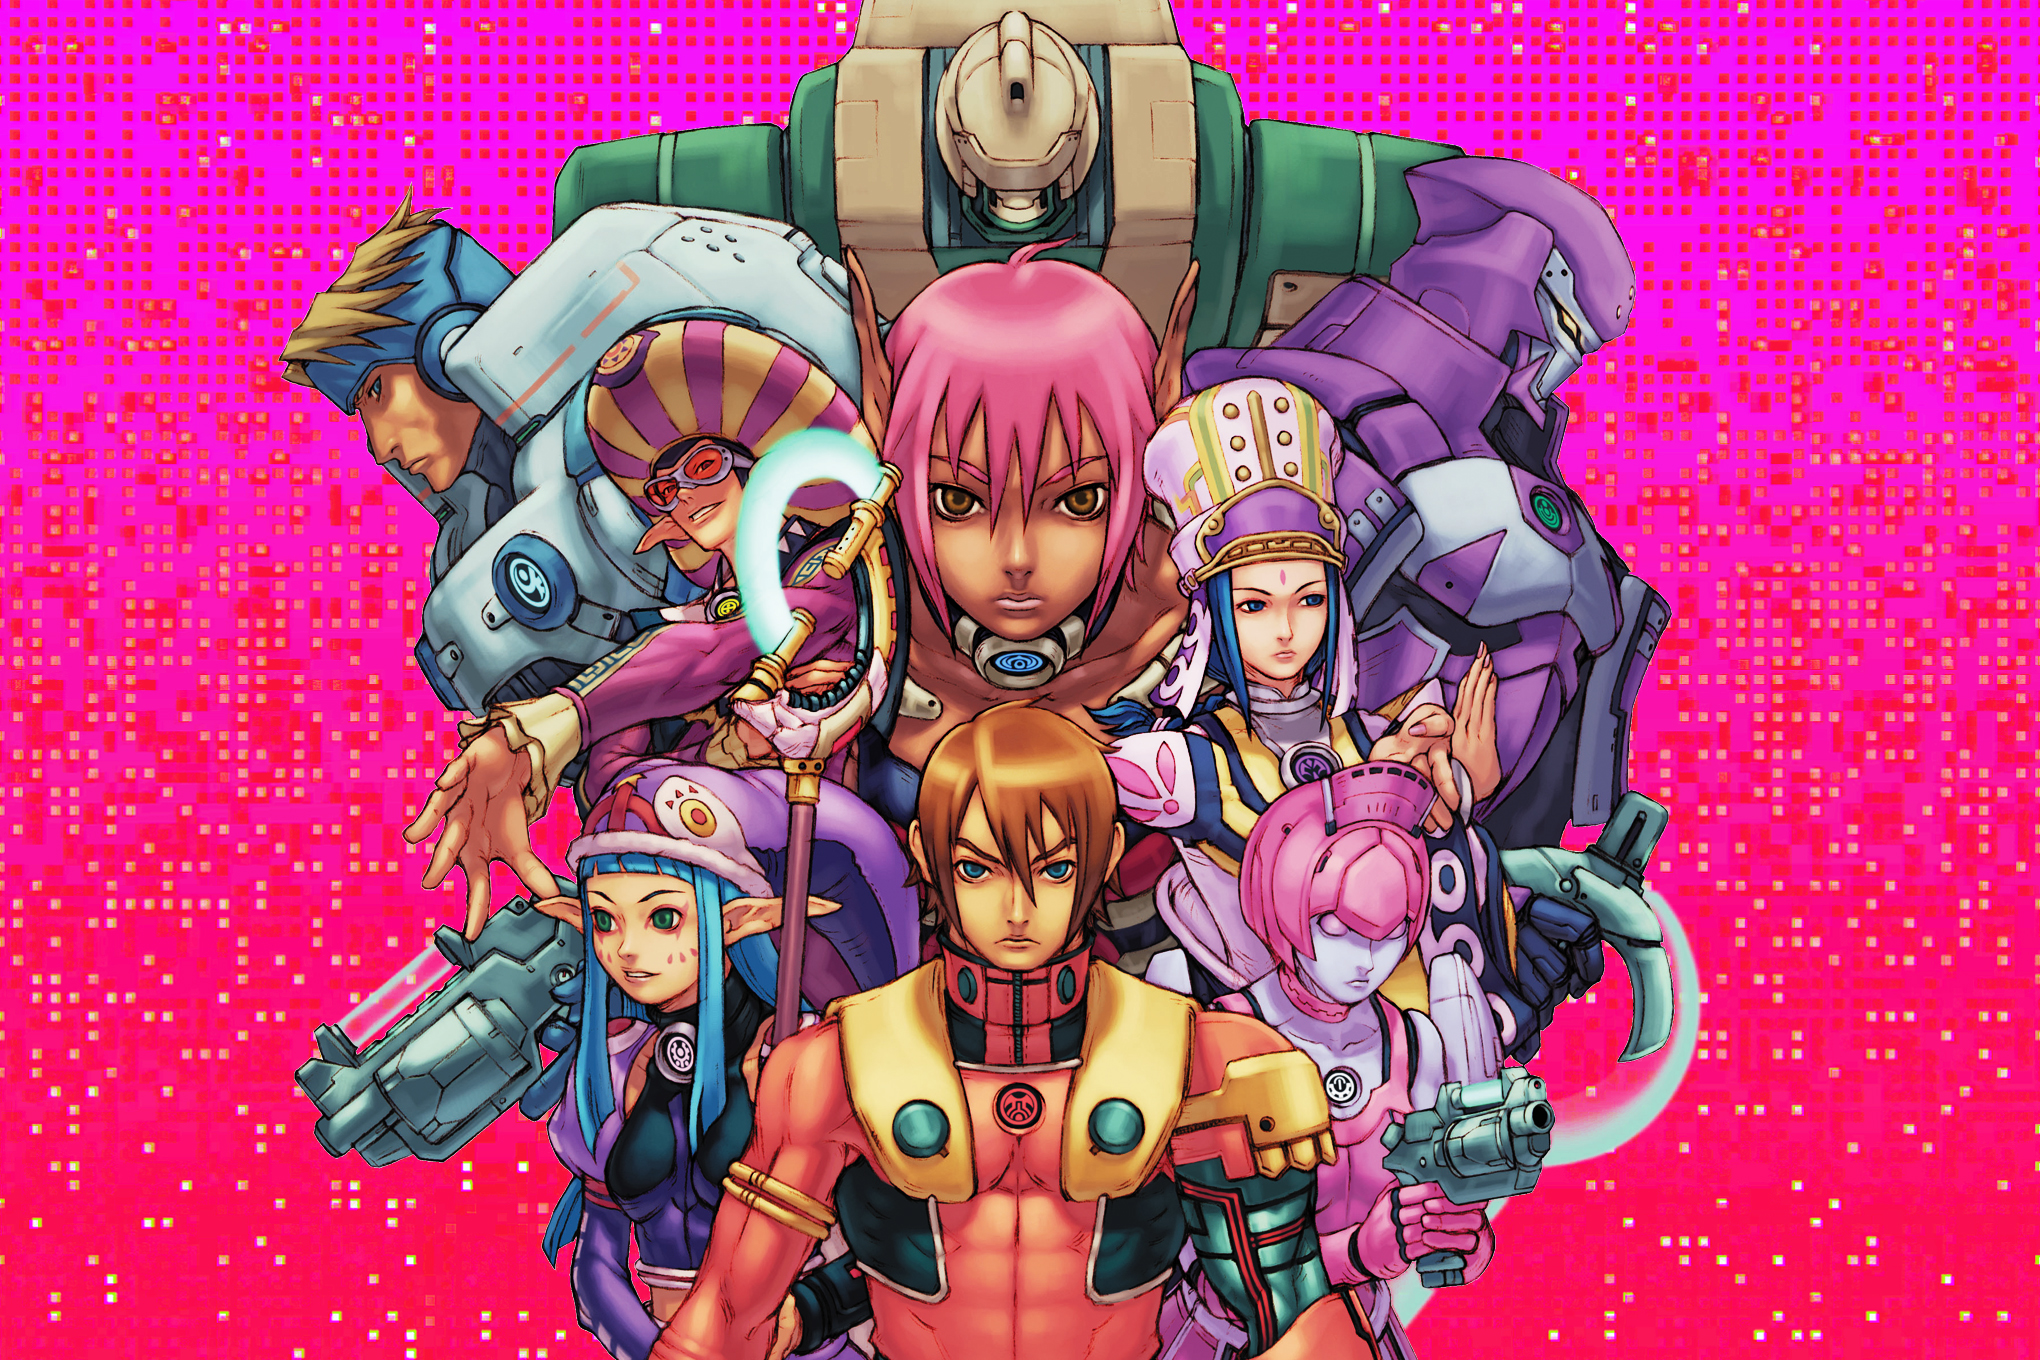 Graphic artwork featuring a montage of characters from the video game Phantasy Star Online over a bright magenta and red pixelated background